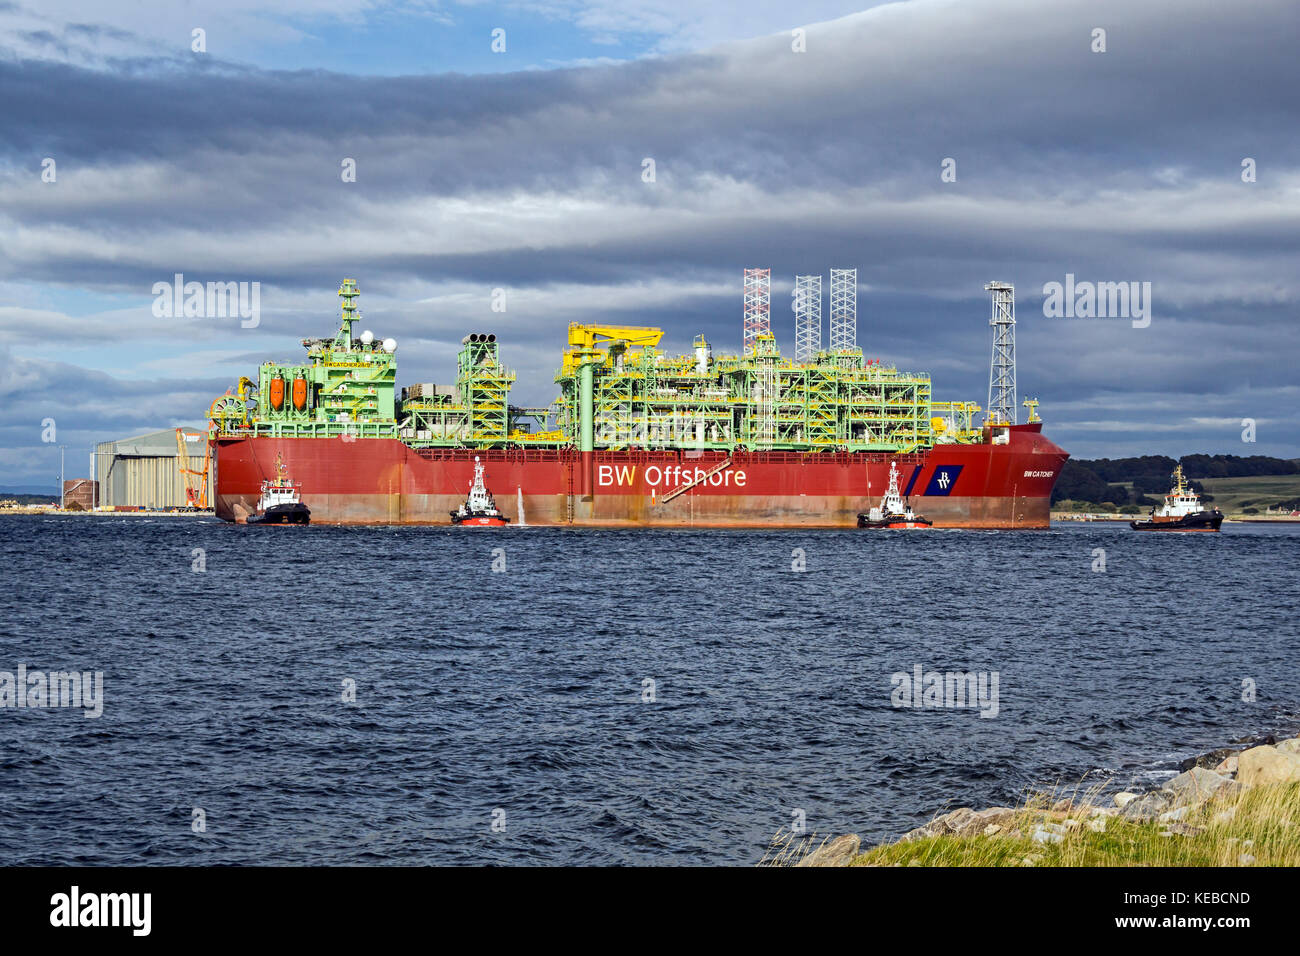 Premier Oil's floating production storage and offloading (FPSO) vessel BW Catcher moving to berth at the Global - Stock Image